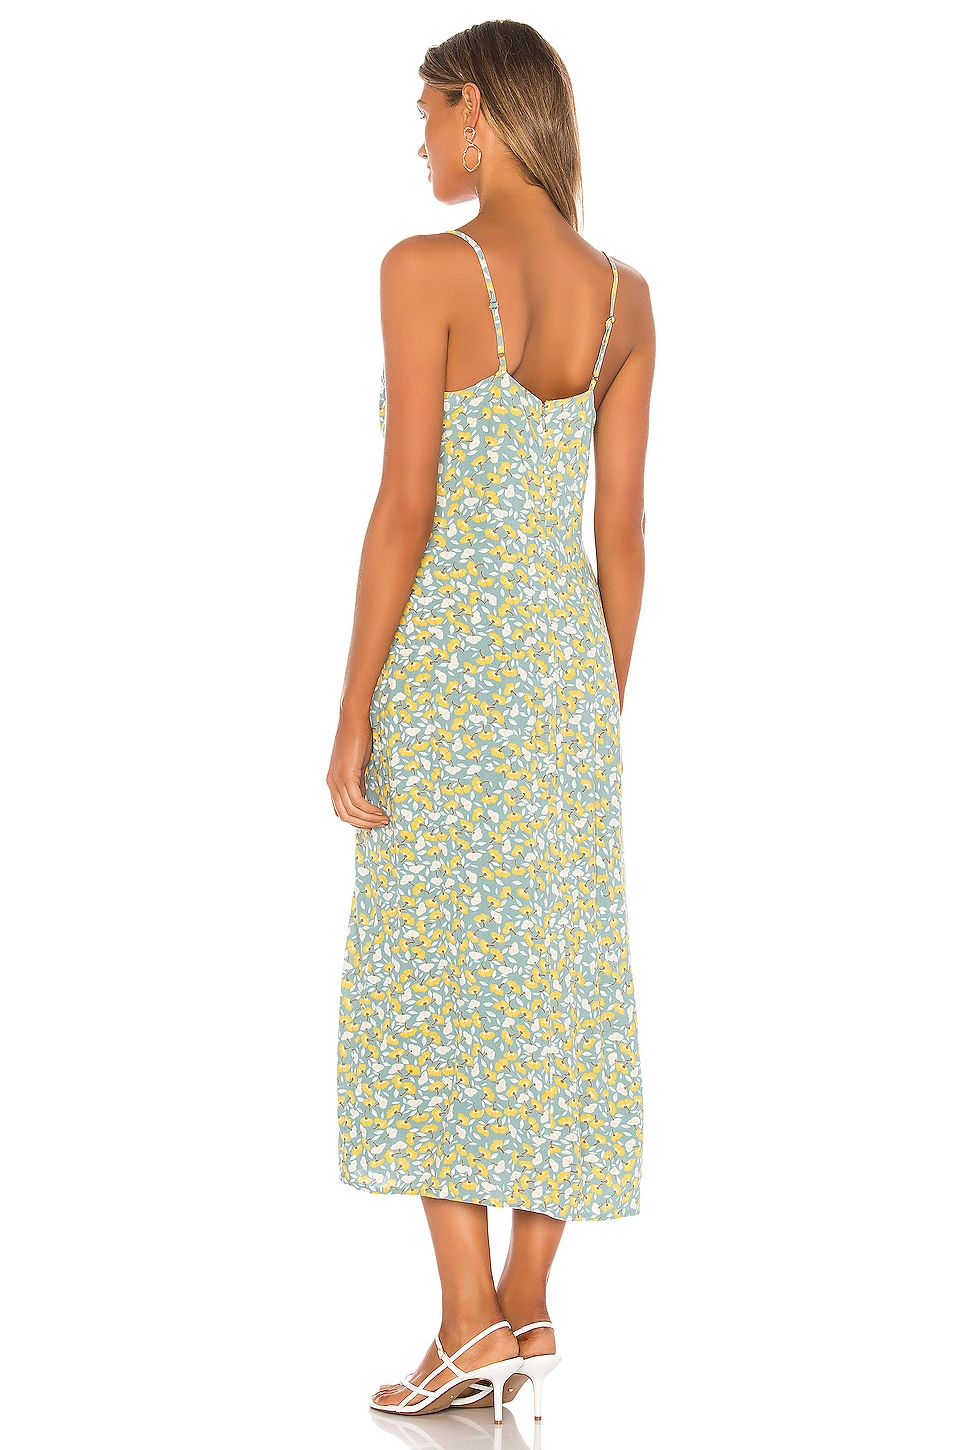 Mai Slip Woven Dress, view 3, click to view large image.